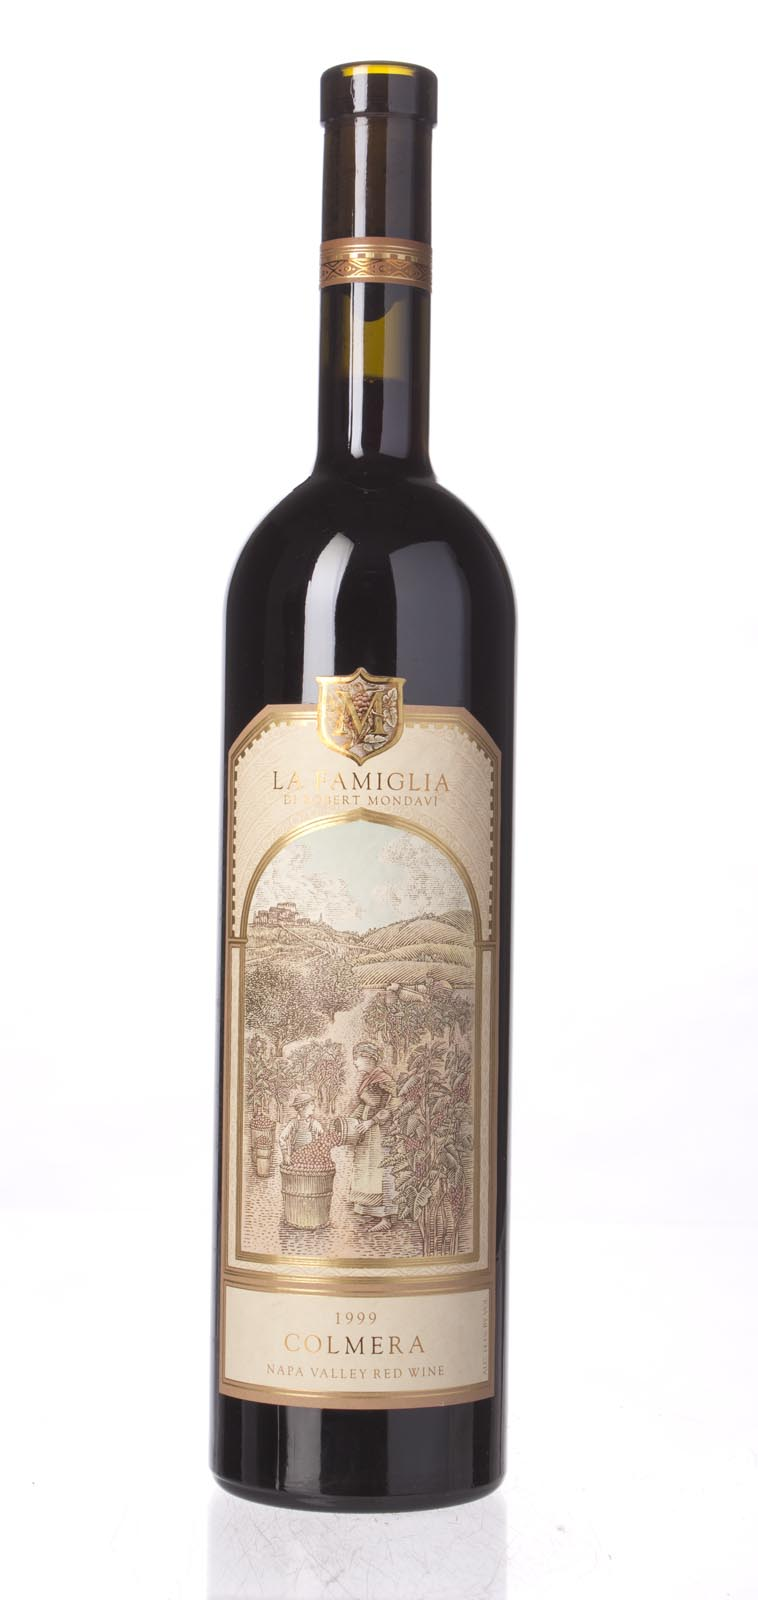 La Famiglia di Robert Mondavi Colmera 1999, 750mL () from The BPW - Merchants of rare and fine wines.